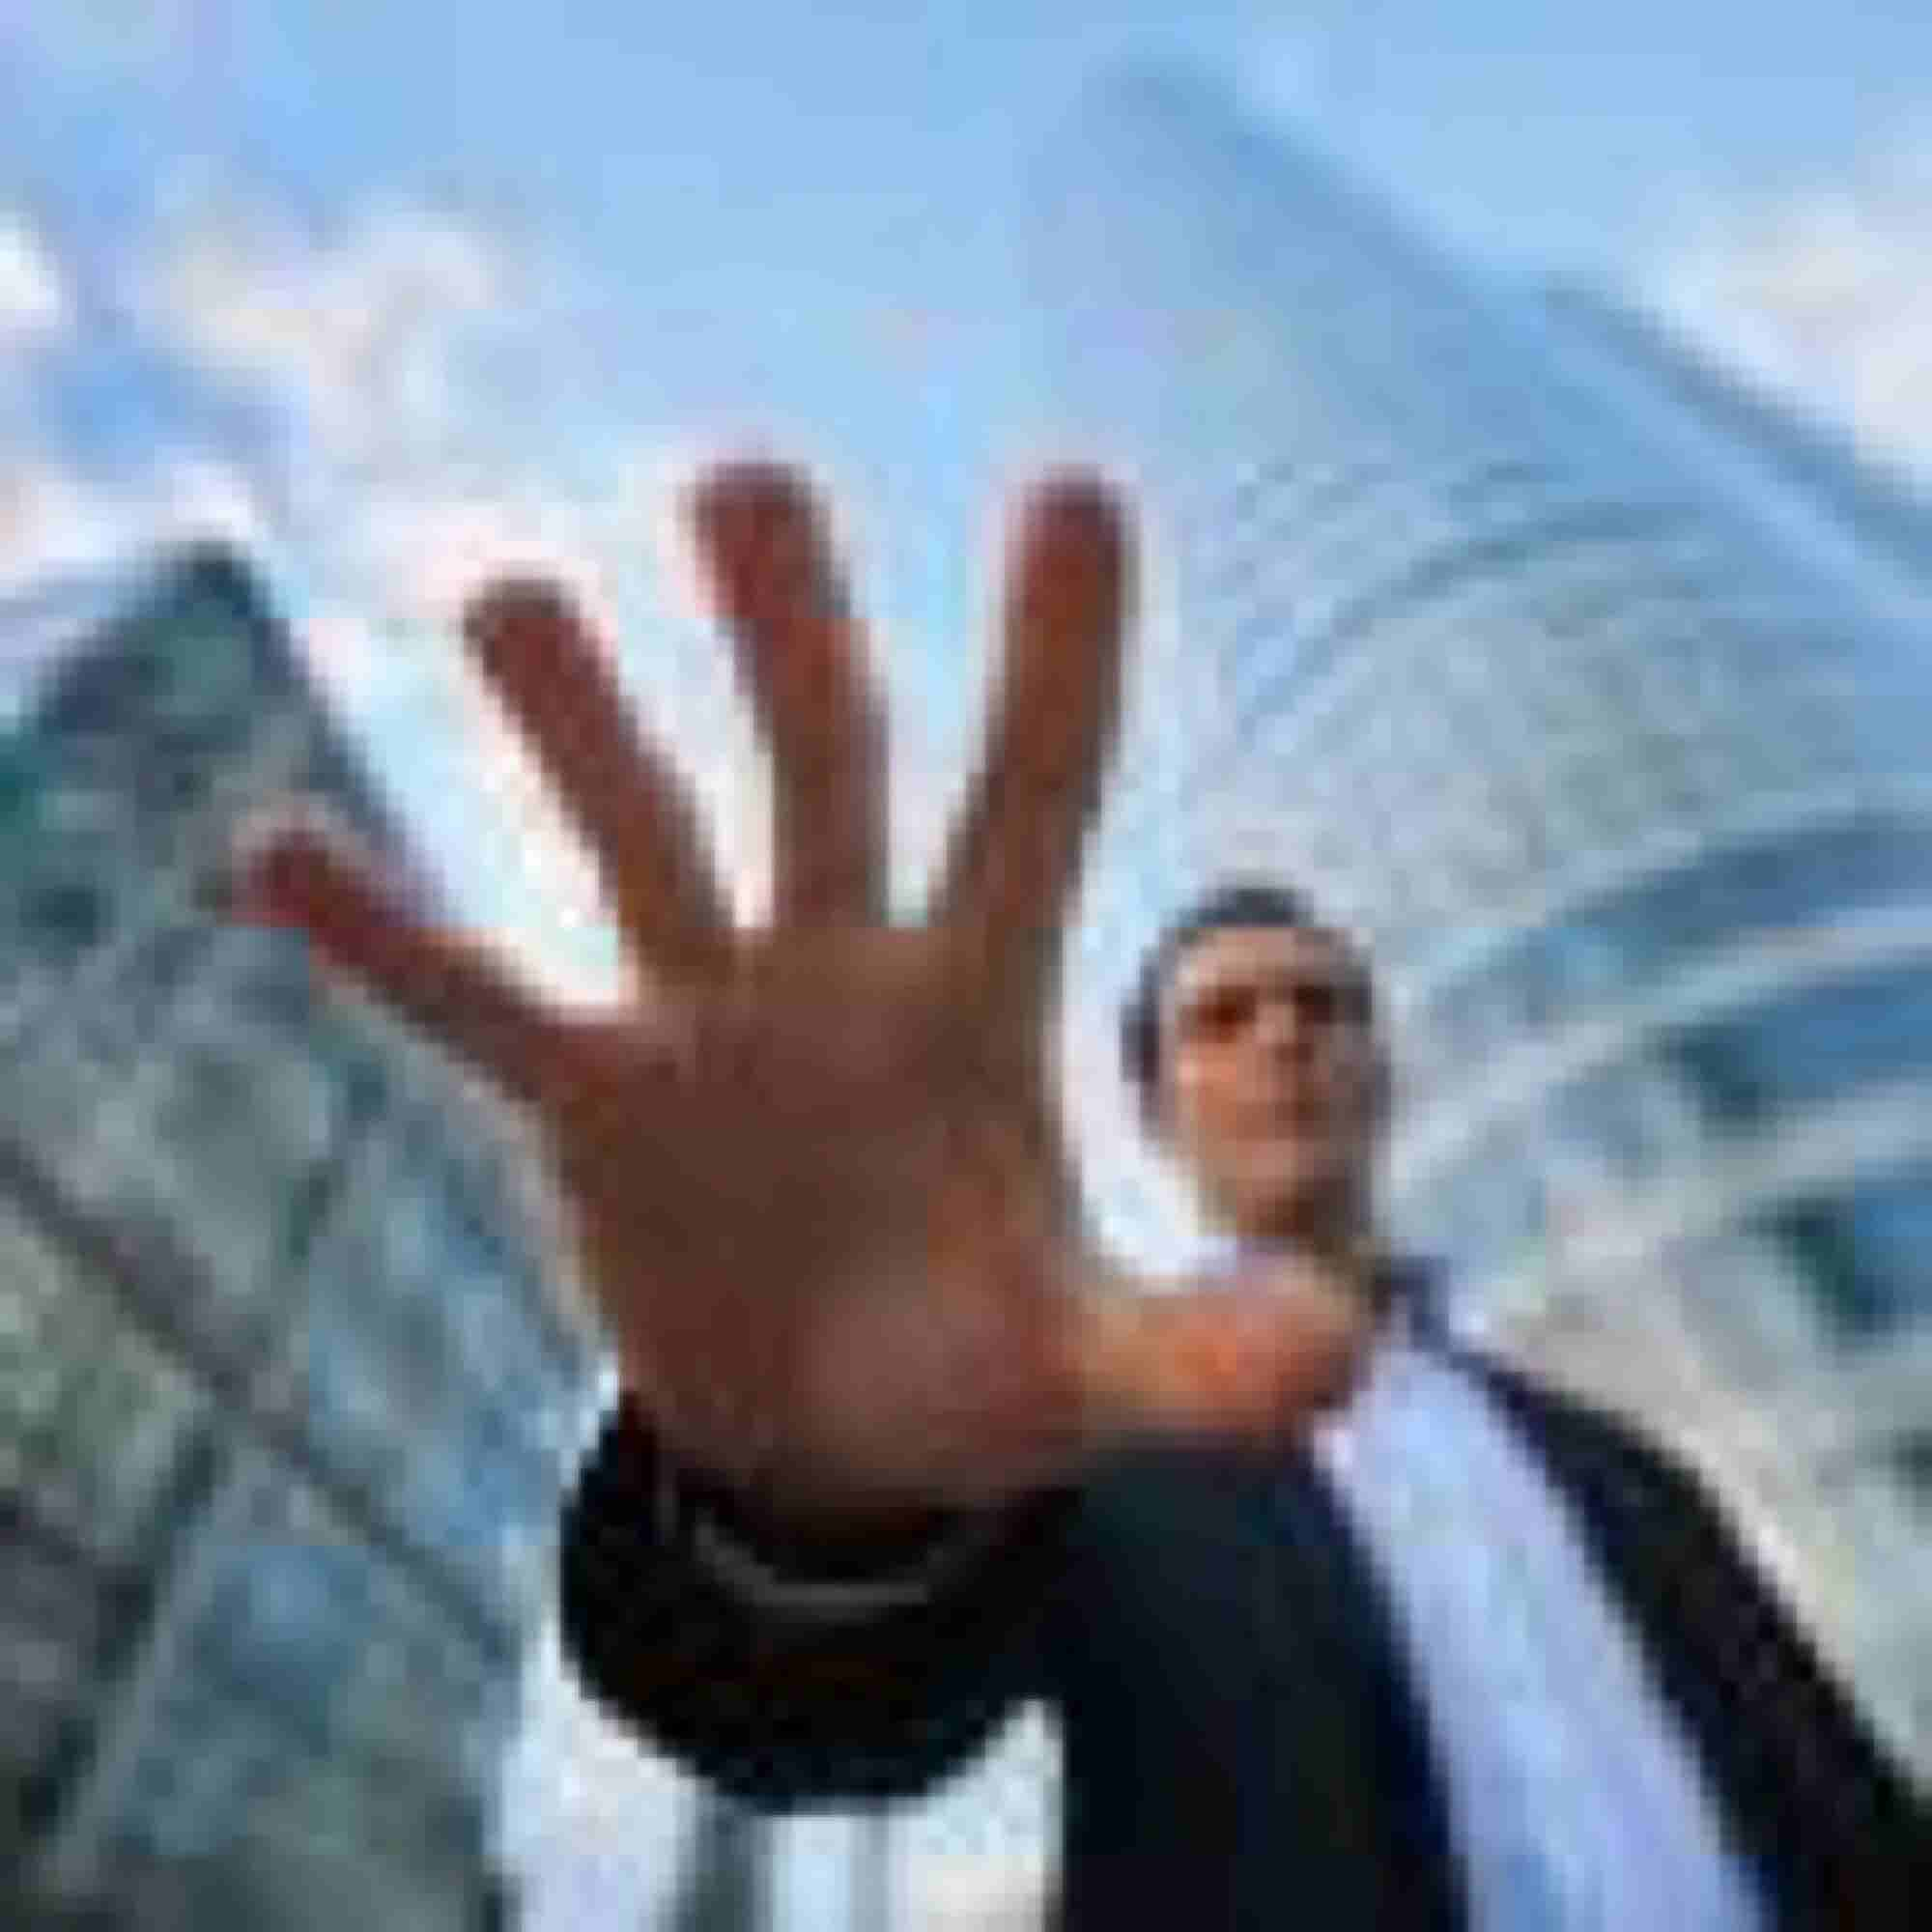 Expert Advice: What to Do When an Employee Is Caught Stealing